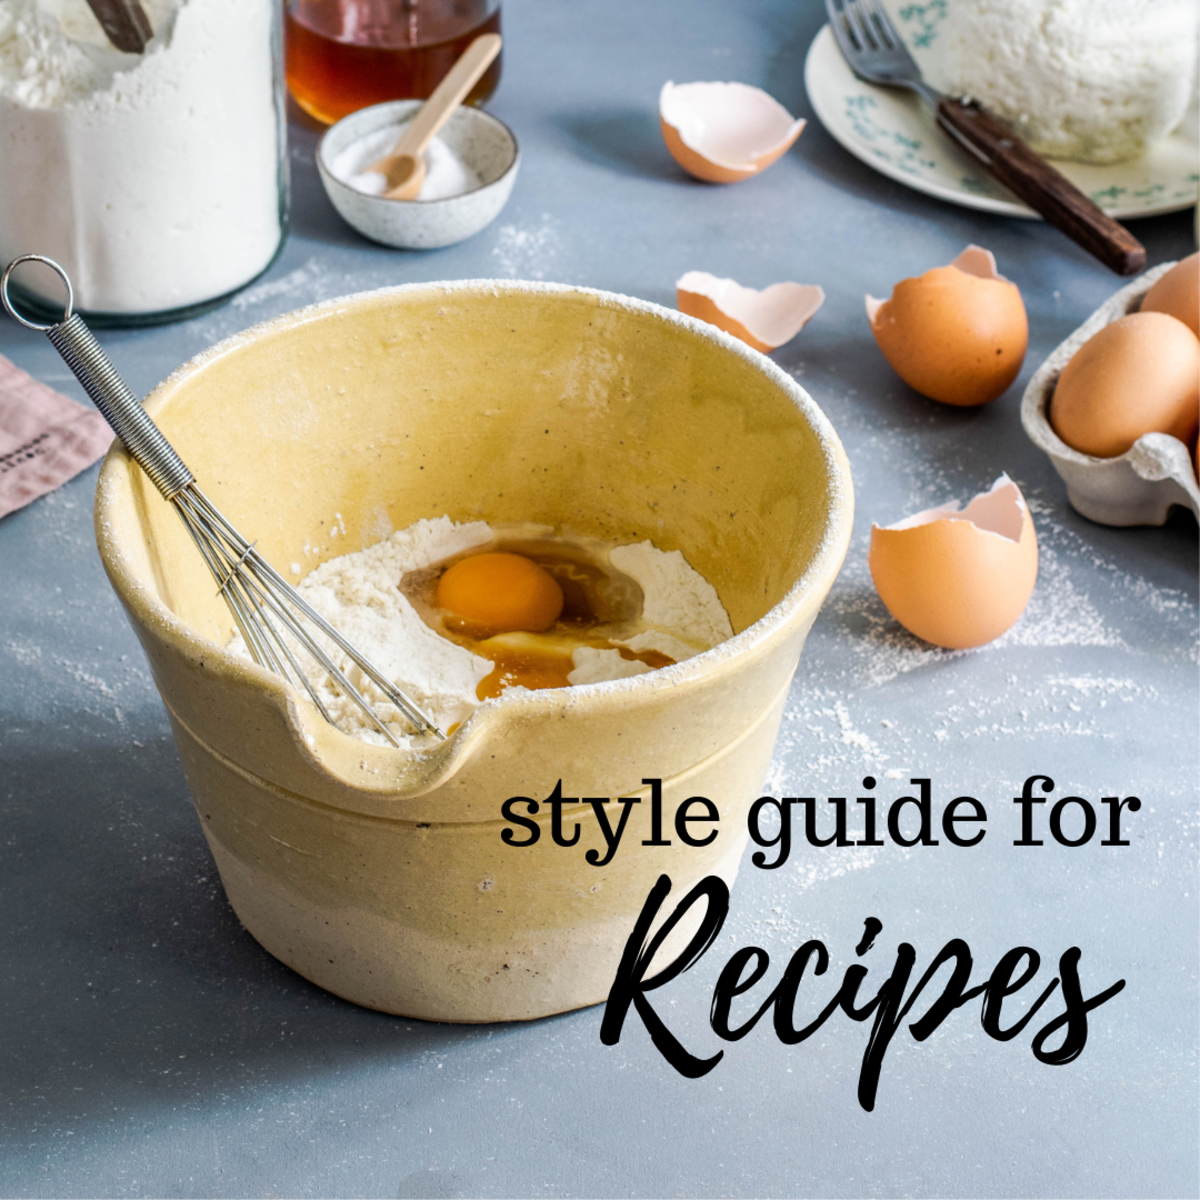 Do you have a recipe you'd like to share?